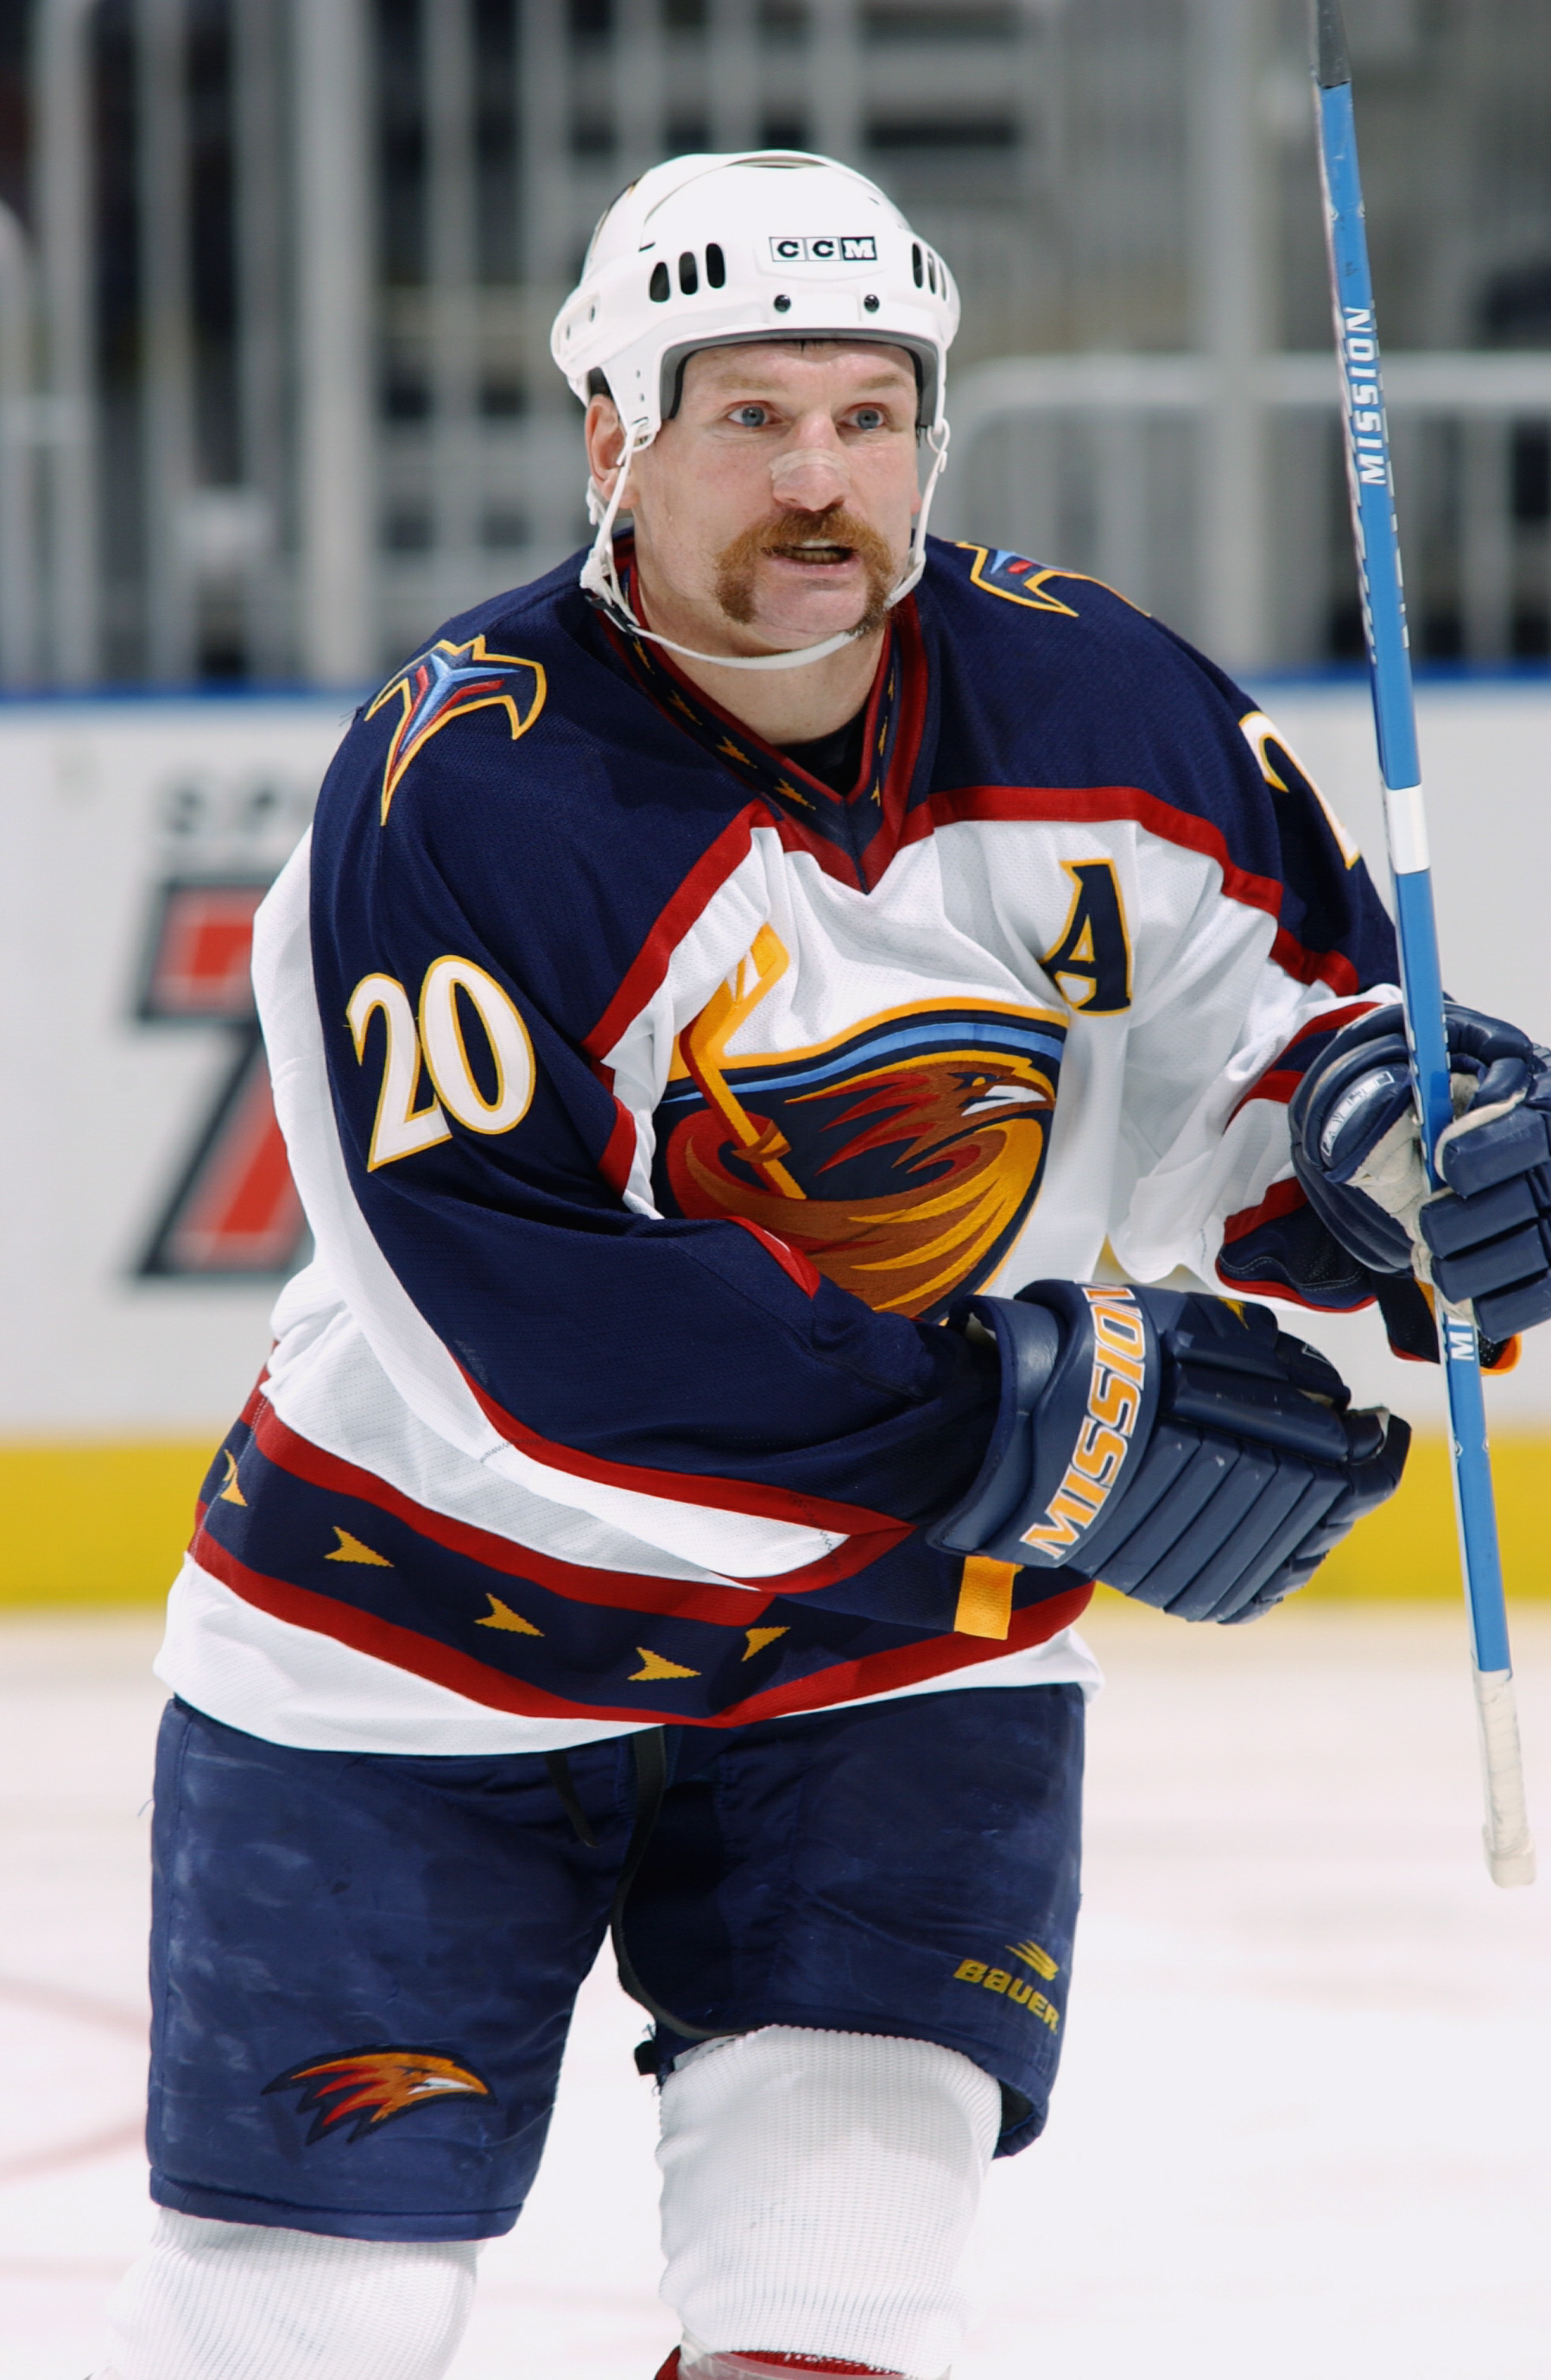 ATLANTA - APRIL 6:  Jeff Odgers #20 of the Atlanta Thrashers skates during the NHL game against the Tampa Bay Lightning  at Philips Arena on April 6, 2003 in Atlanta, Georgia. The Thrashers defeated the Lightning 6-2. (Photo by Scott Cunningham Getty Imag